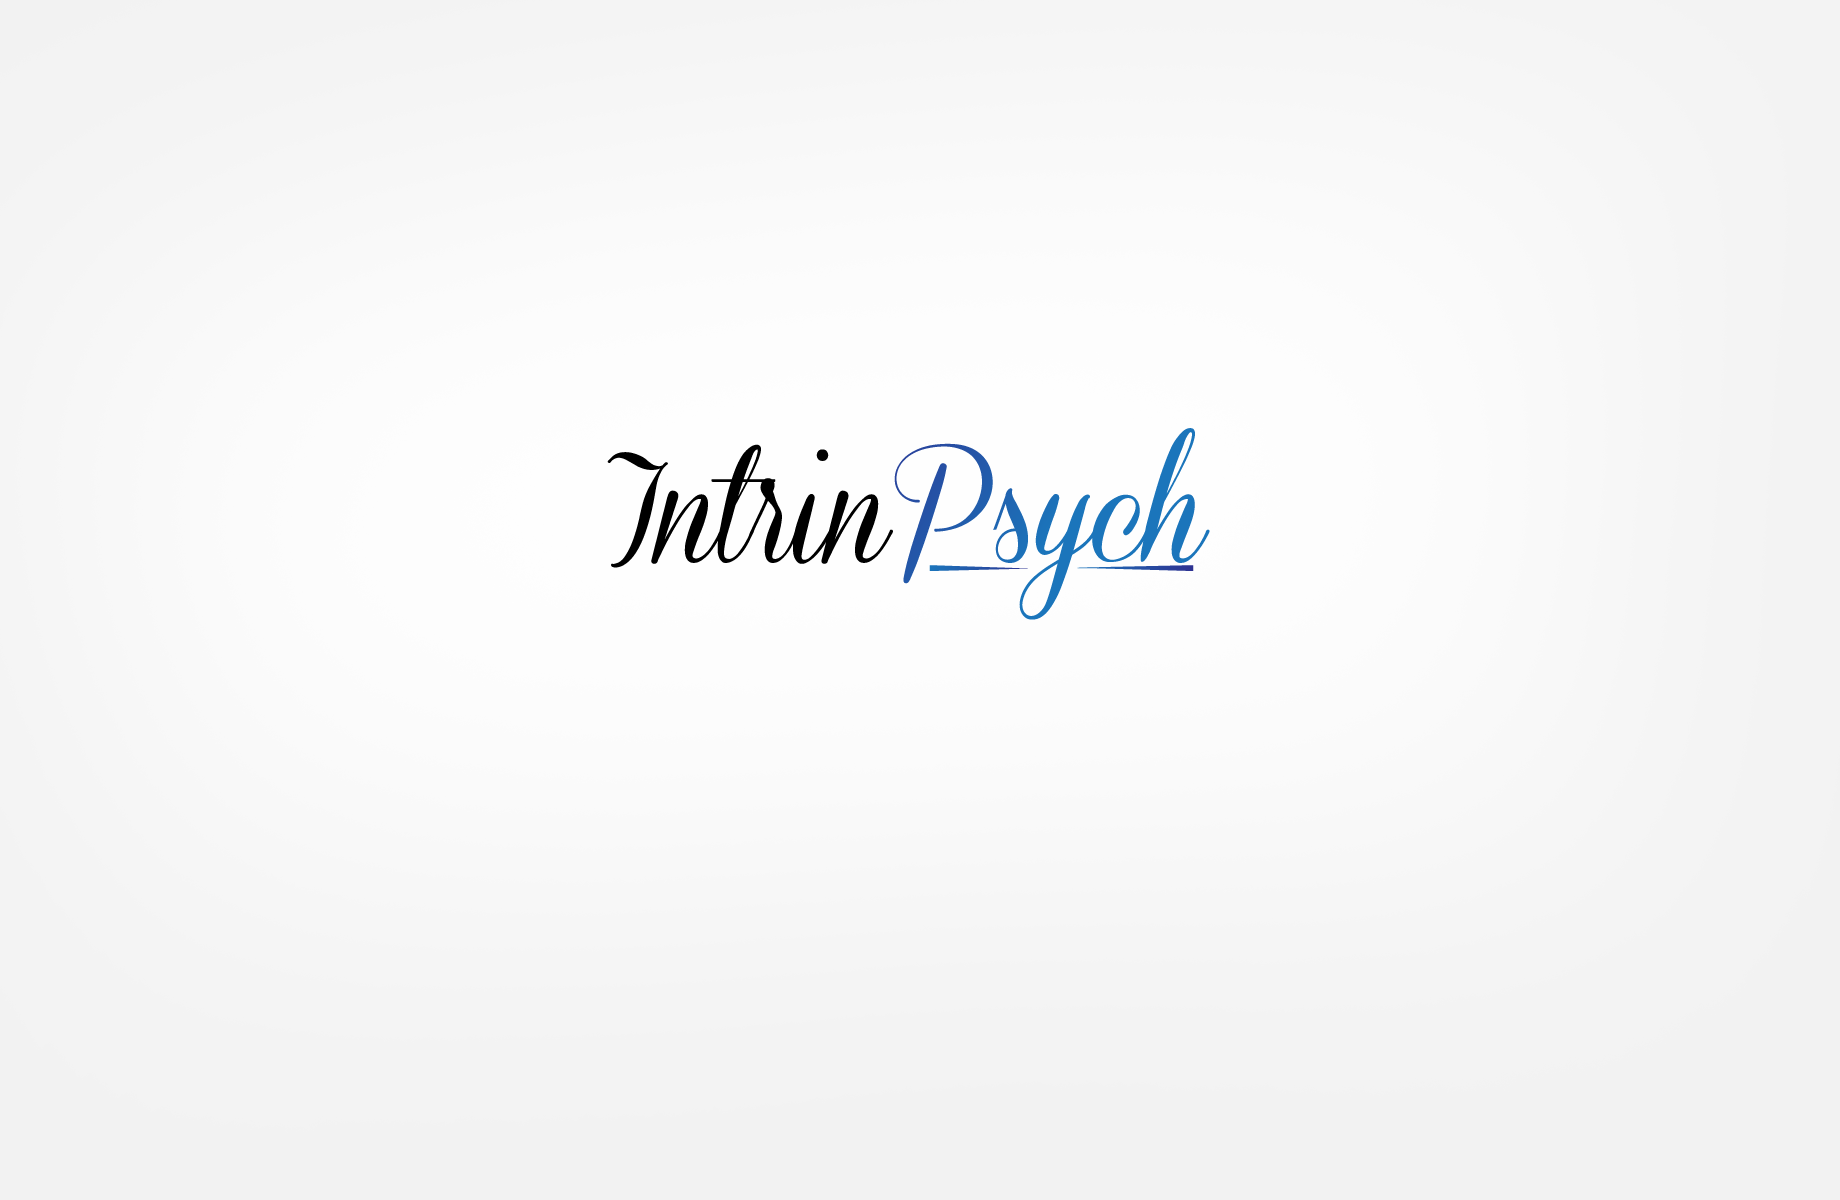 Logo Design by Jan Chua - Entry No. 72 in the Logo Design Contest New Logo Design for IntrinPsych.